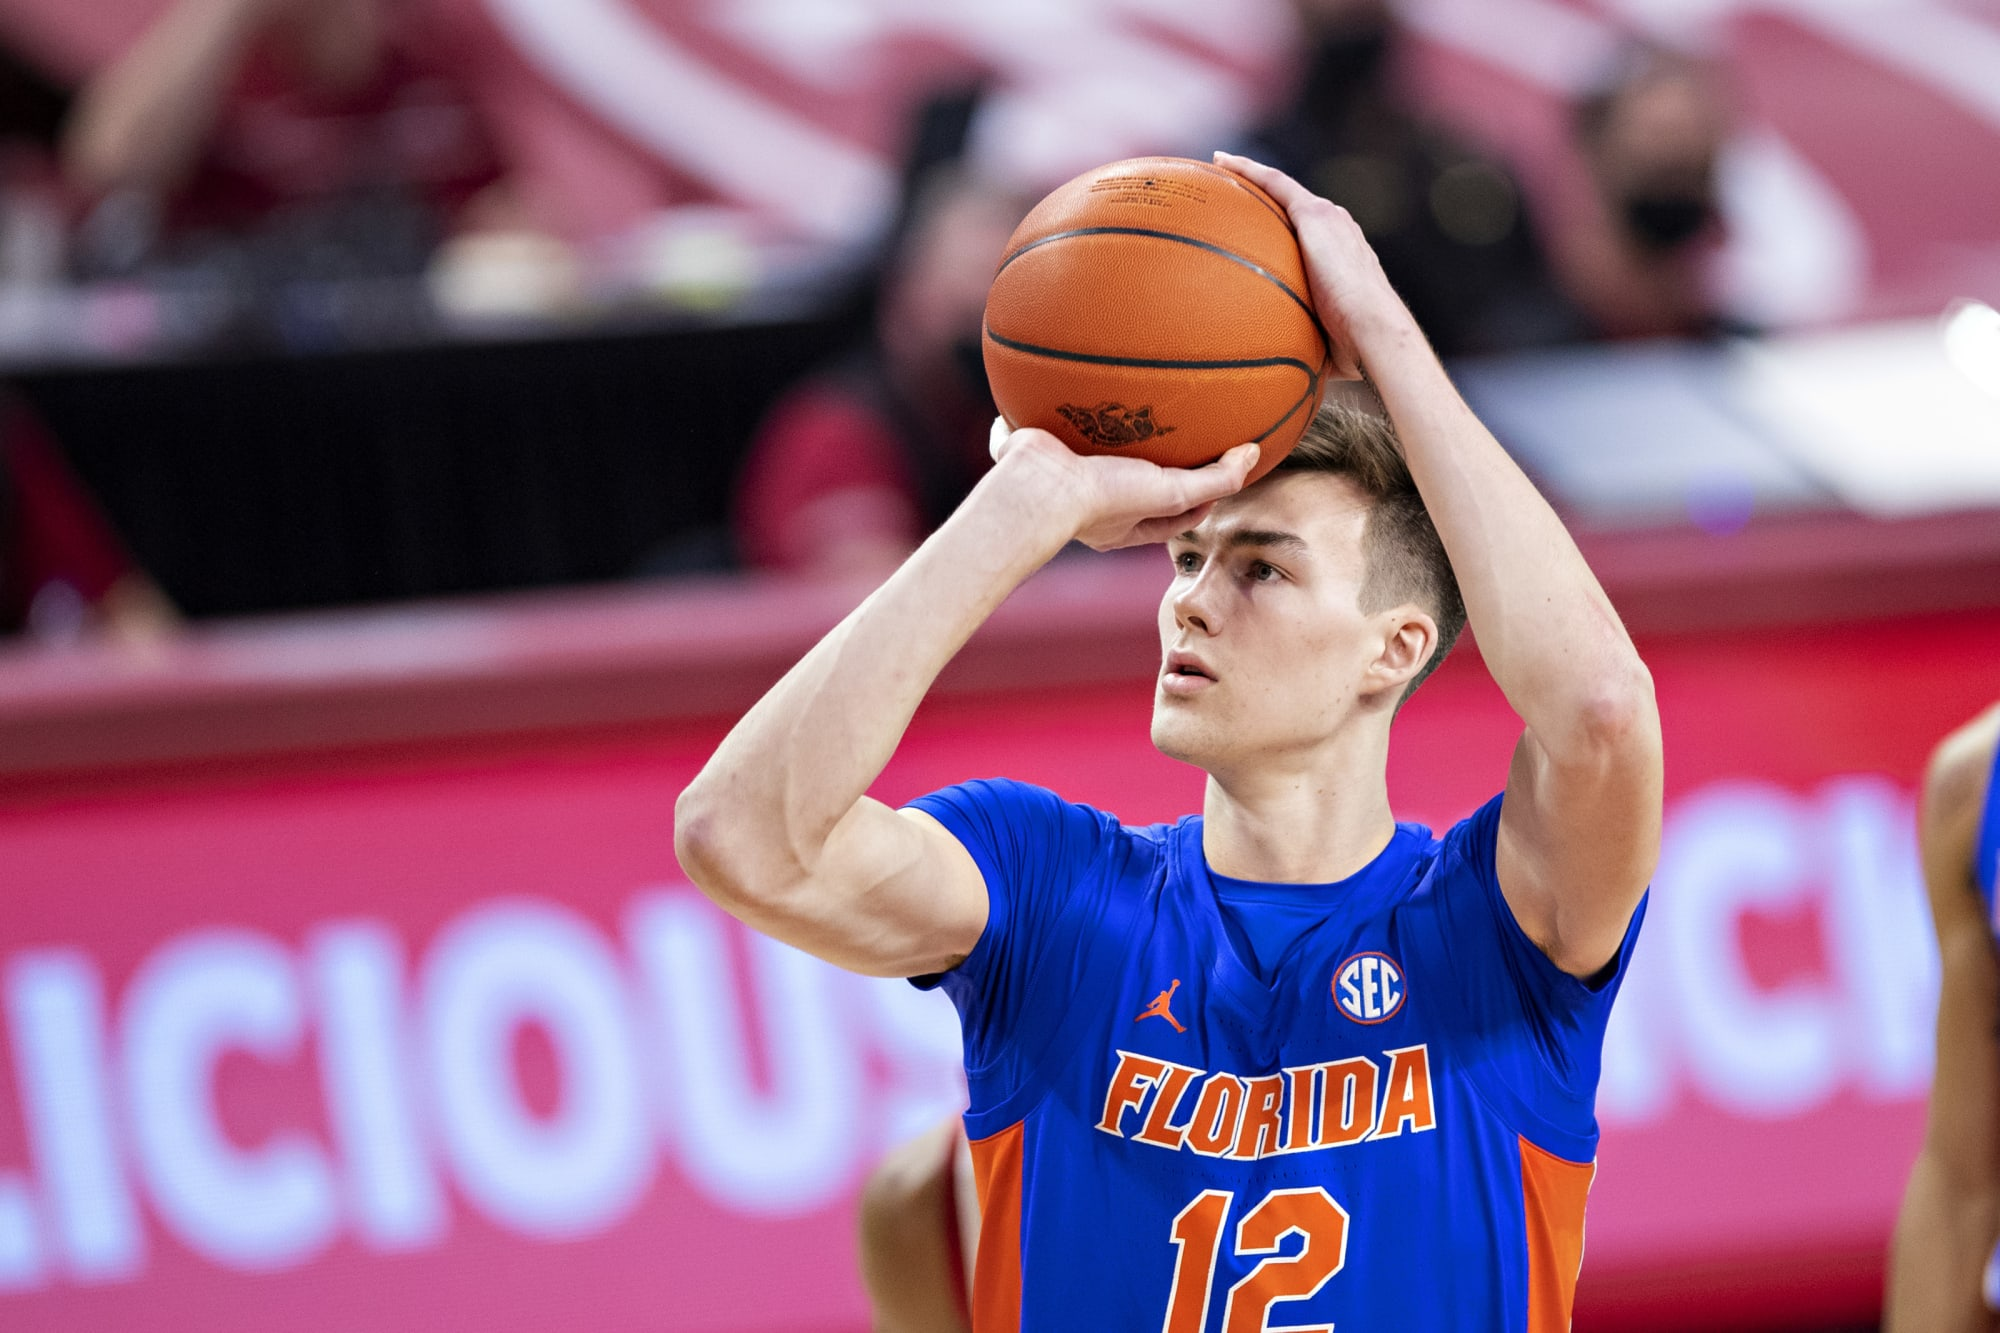 Kentucky basketball vs. Florida live stream: Betting odds, TV channel, prediction